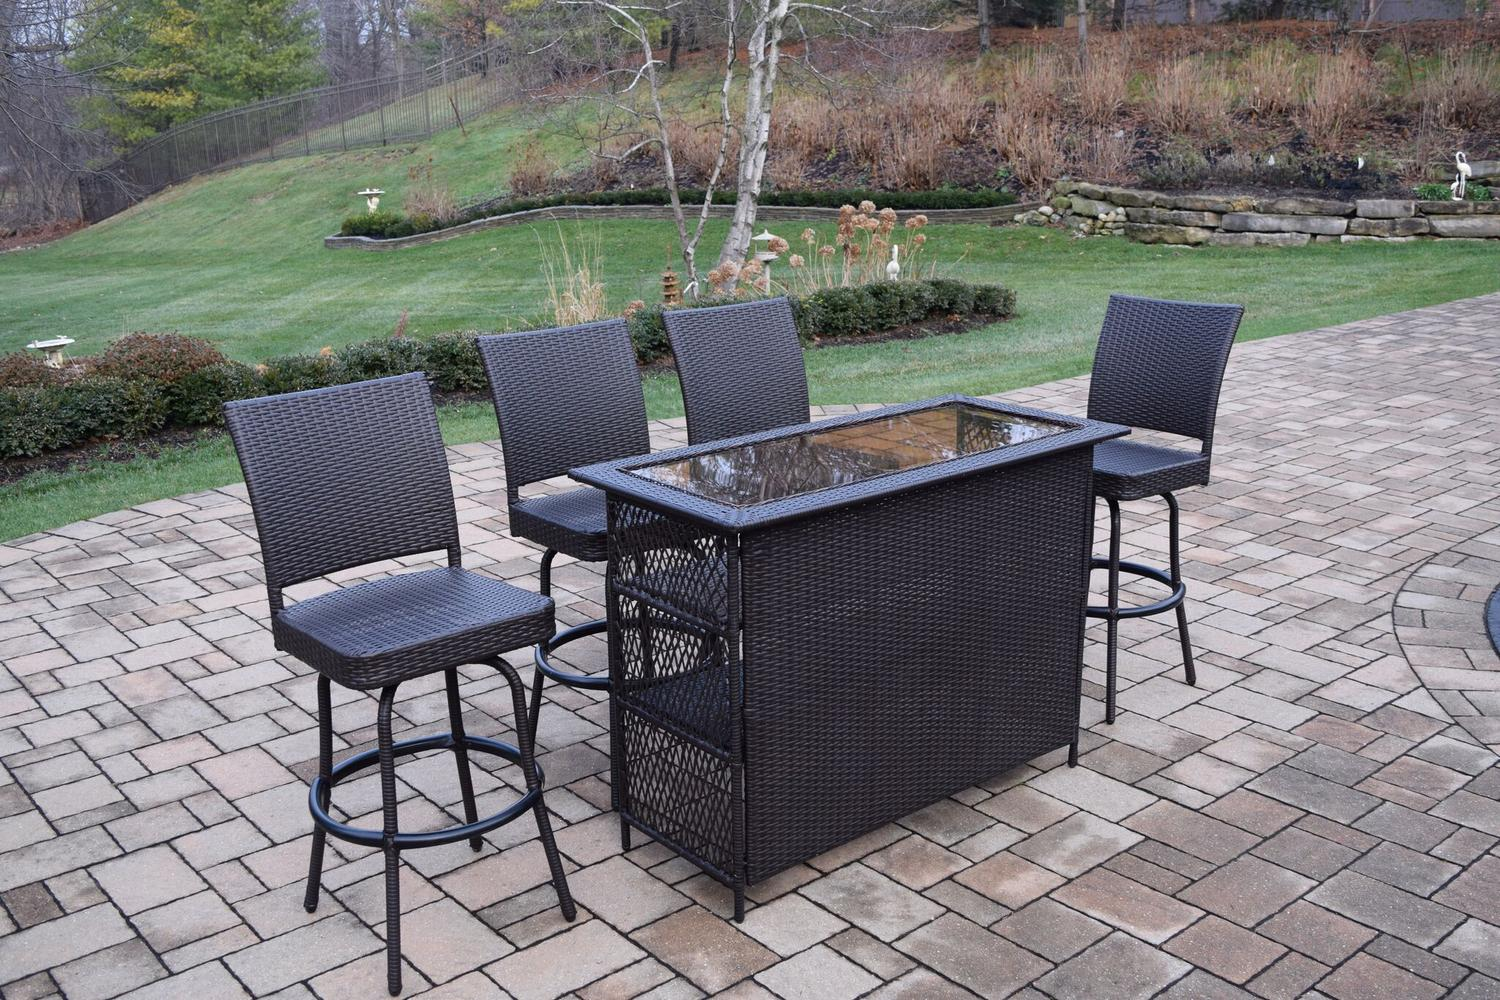 5-Piece Coffee Brown Elite All-Weather Resin Wicker Outdoor Patio Bar Set by CC Outdoor Living